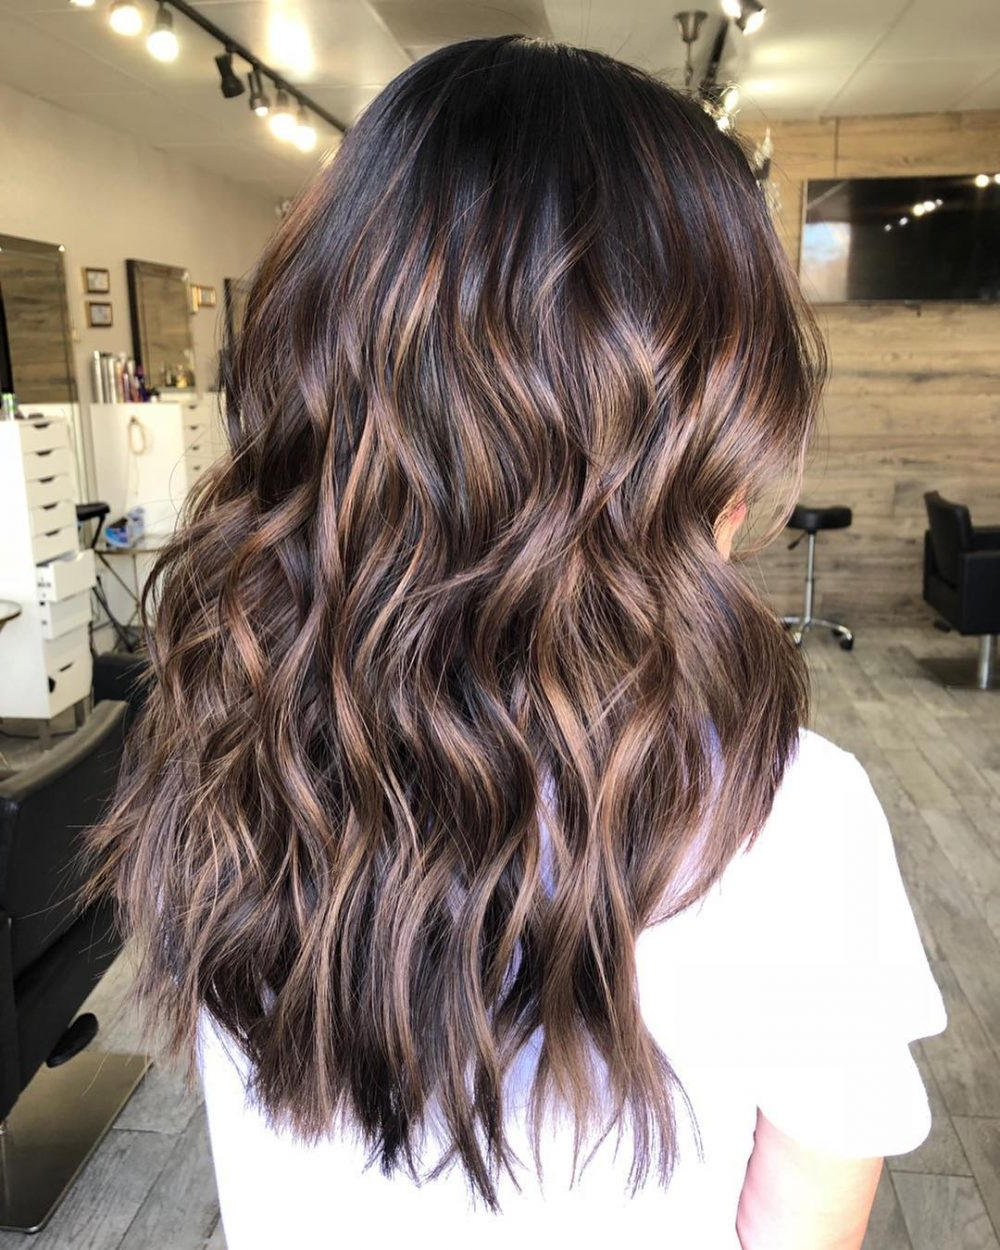 26 Lowlights In 2018 That Will Inspire Your Next Hair Color Regarding Soft Auburn Look Hairstyles (View 16 of 20)